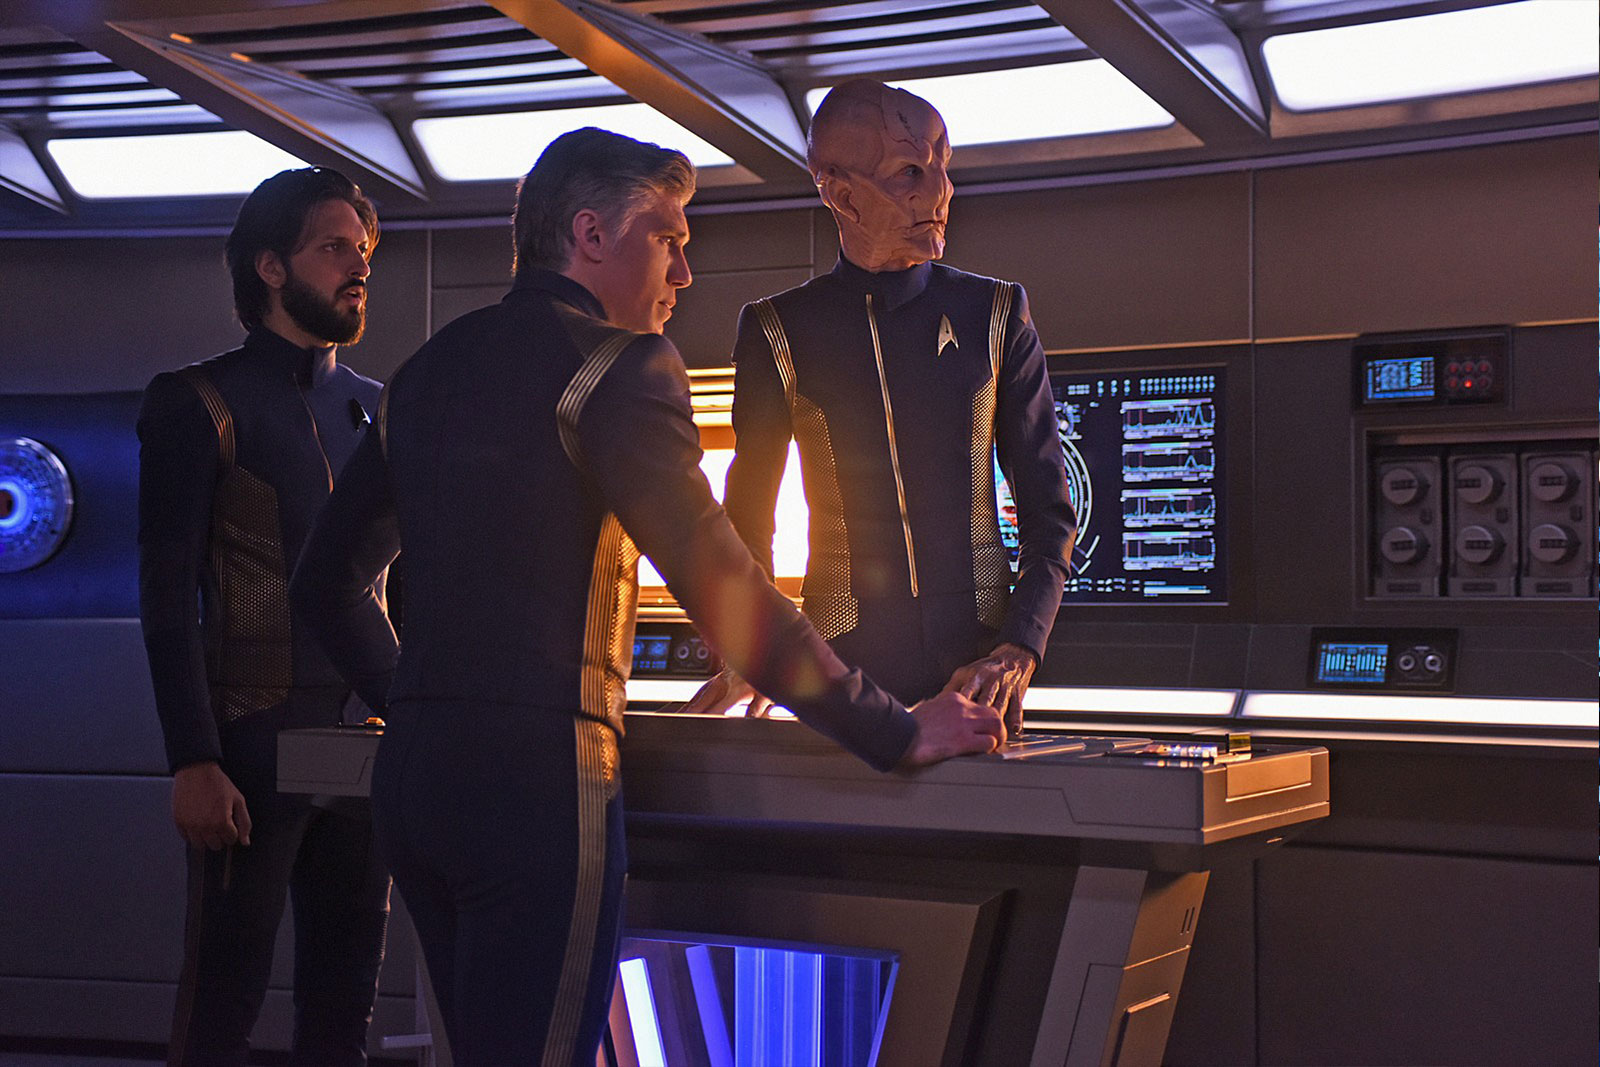 Shazad Latif as Ash Tyler, Anson Mount as Captain Christopher Pike and Doug Jones as Saru